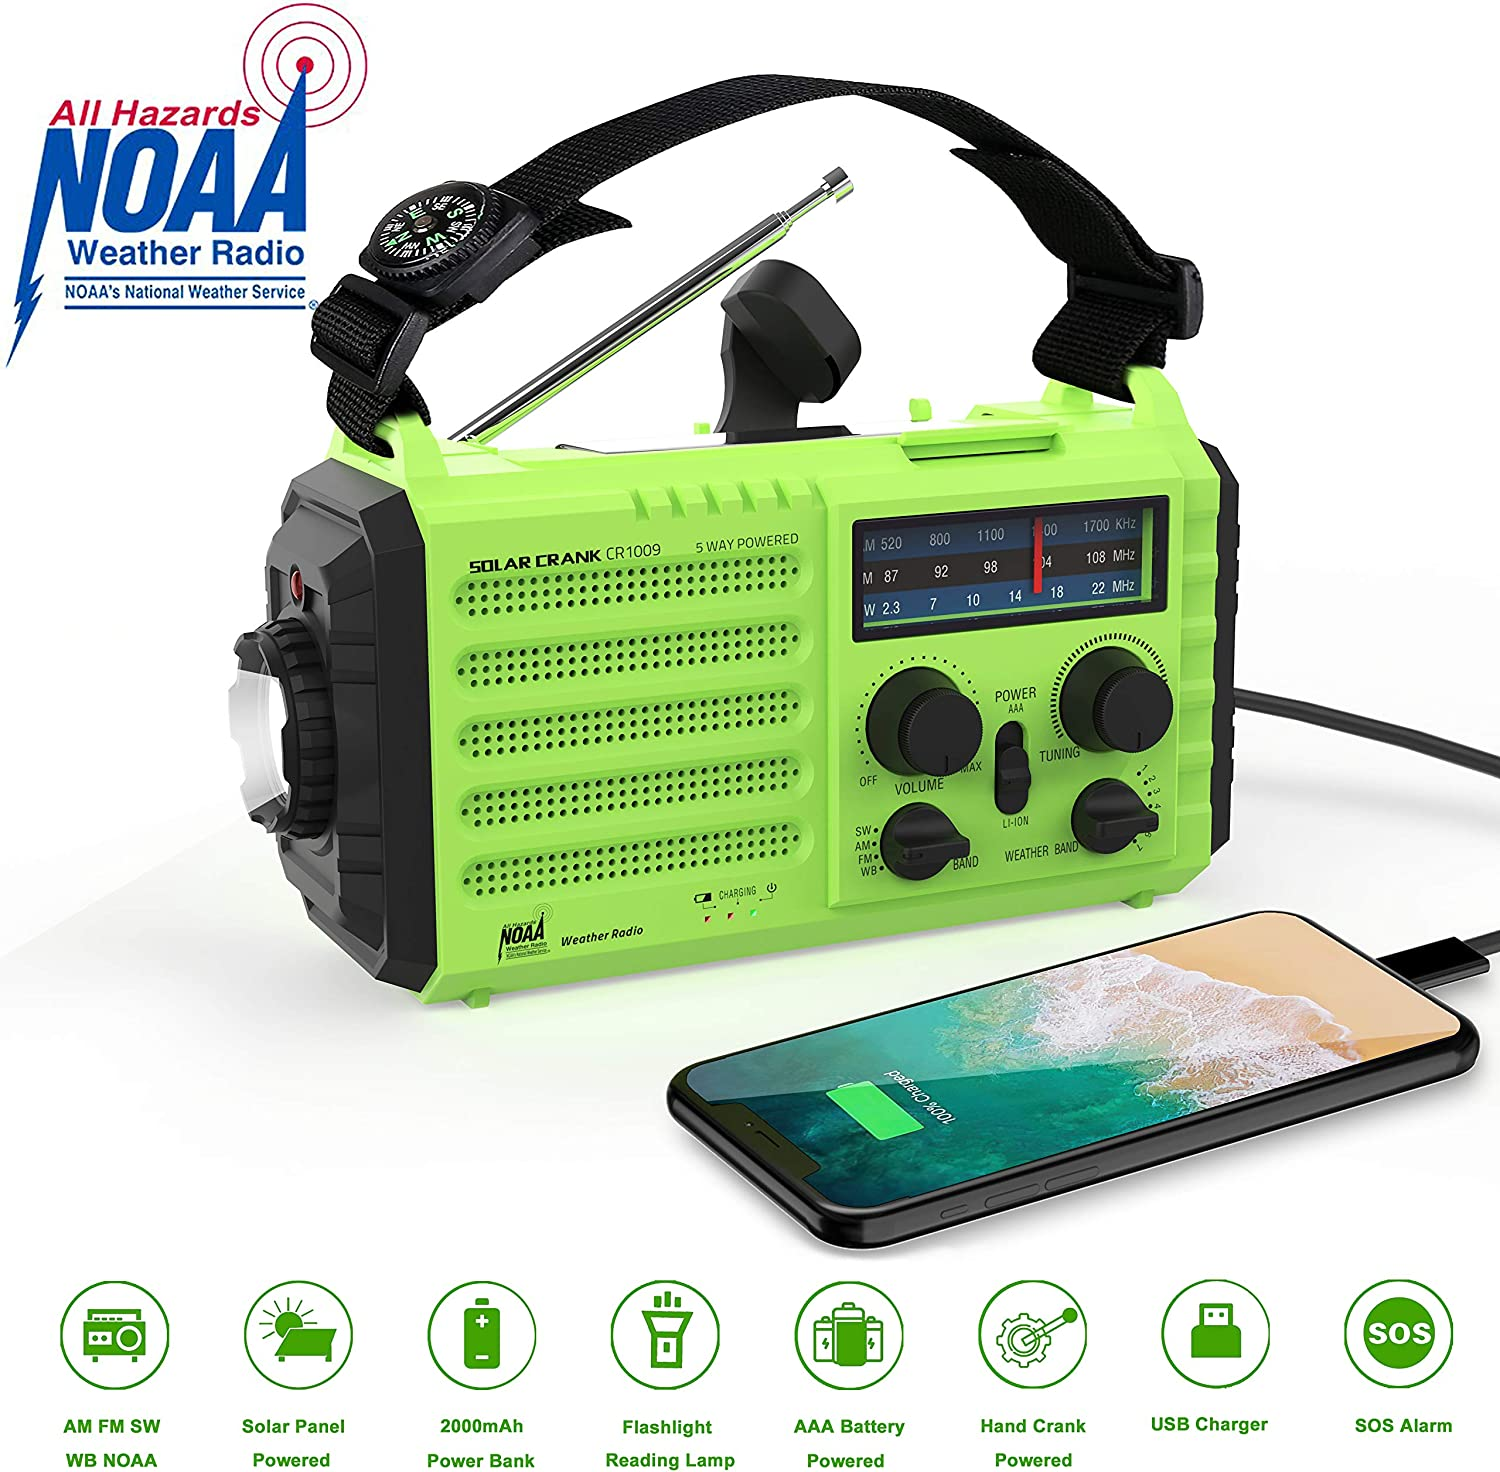 Weather Radio Onlyee Solar Hand Crank Emergency Radio 5 Ways Powered AM/FM/SW/NOAA Weather Alert Portable Radio with Flashlight, Reading Lamp, 2000 mAh Power Bank USB Cellphone Charger and SOS Alarm